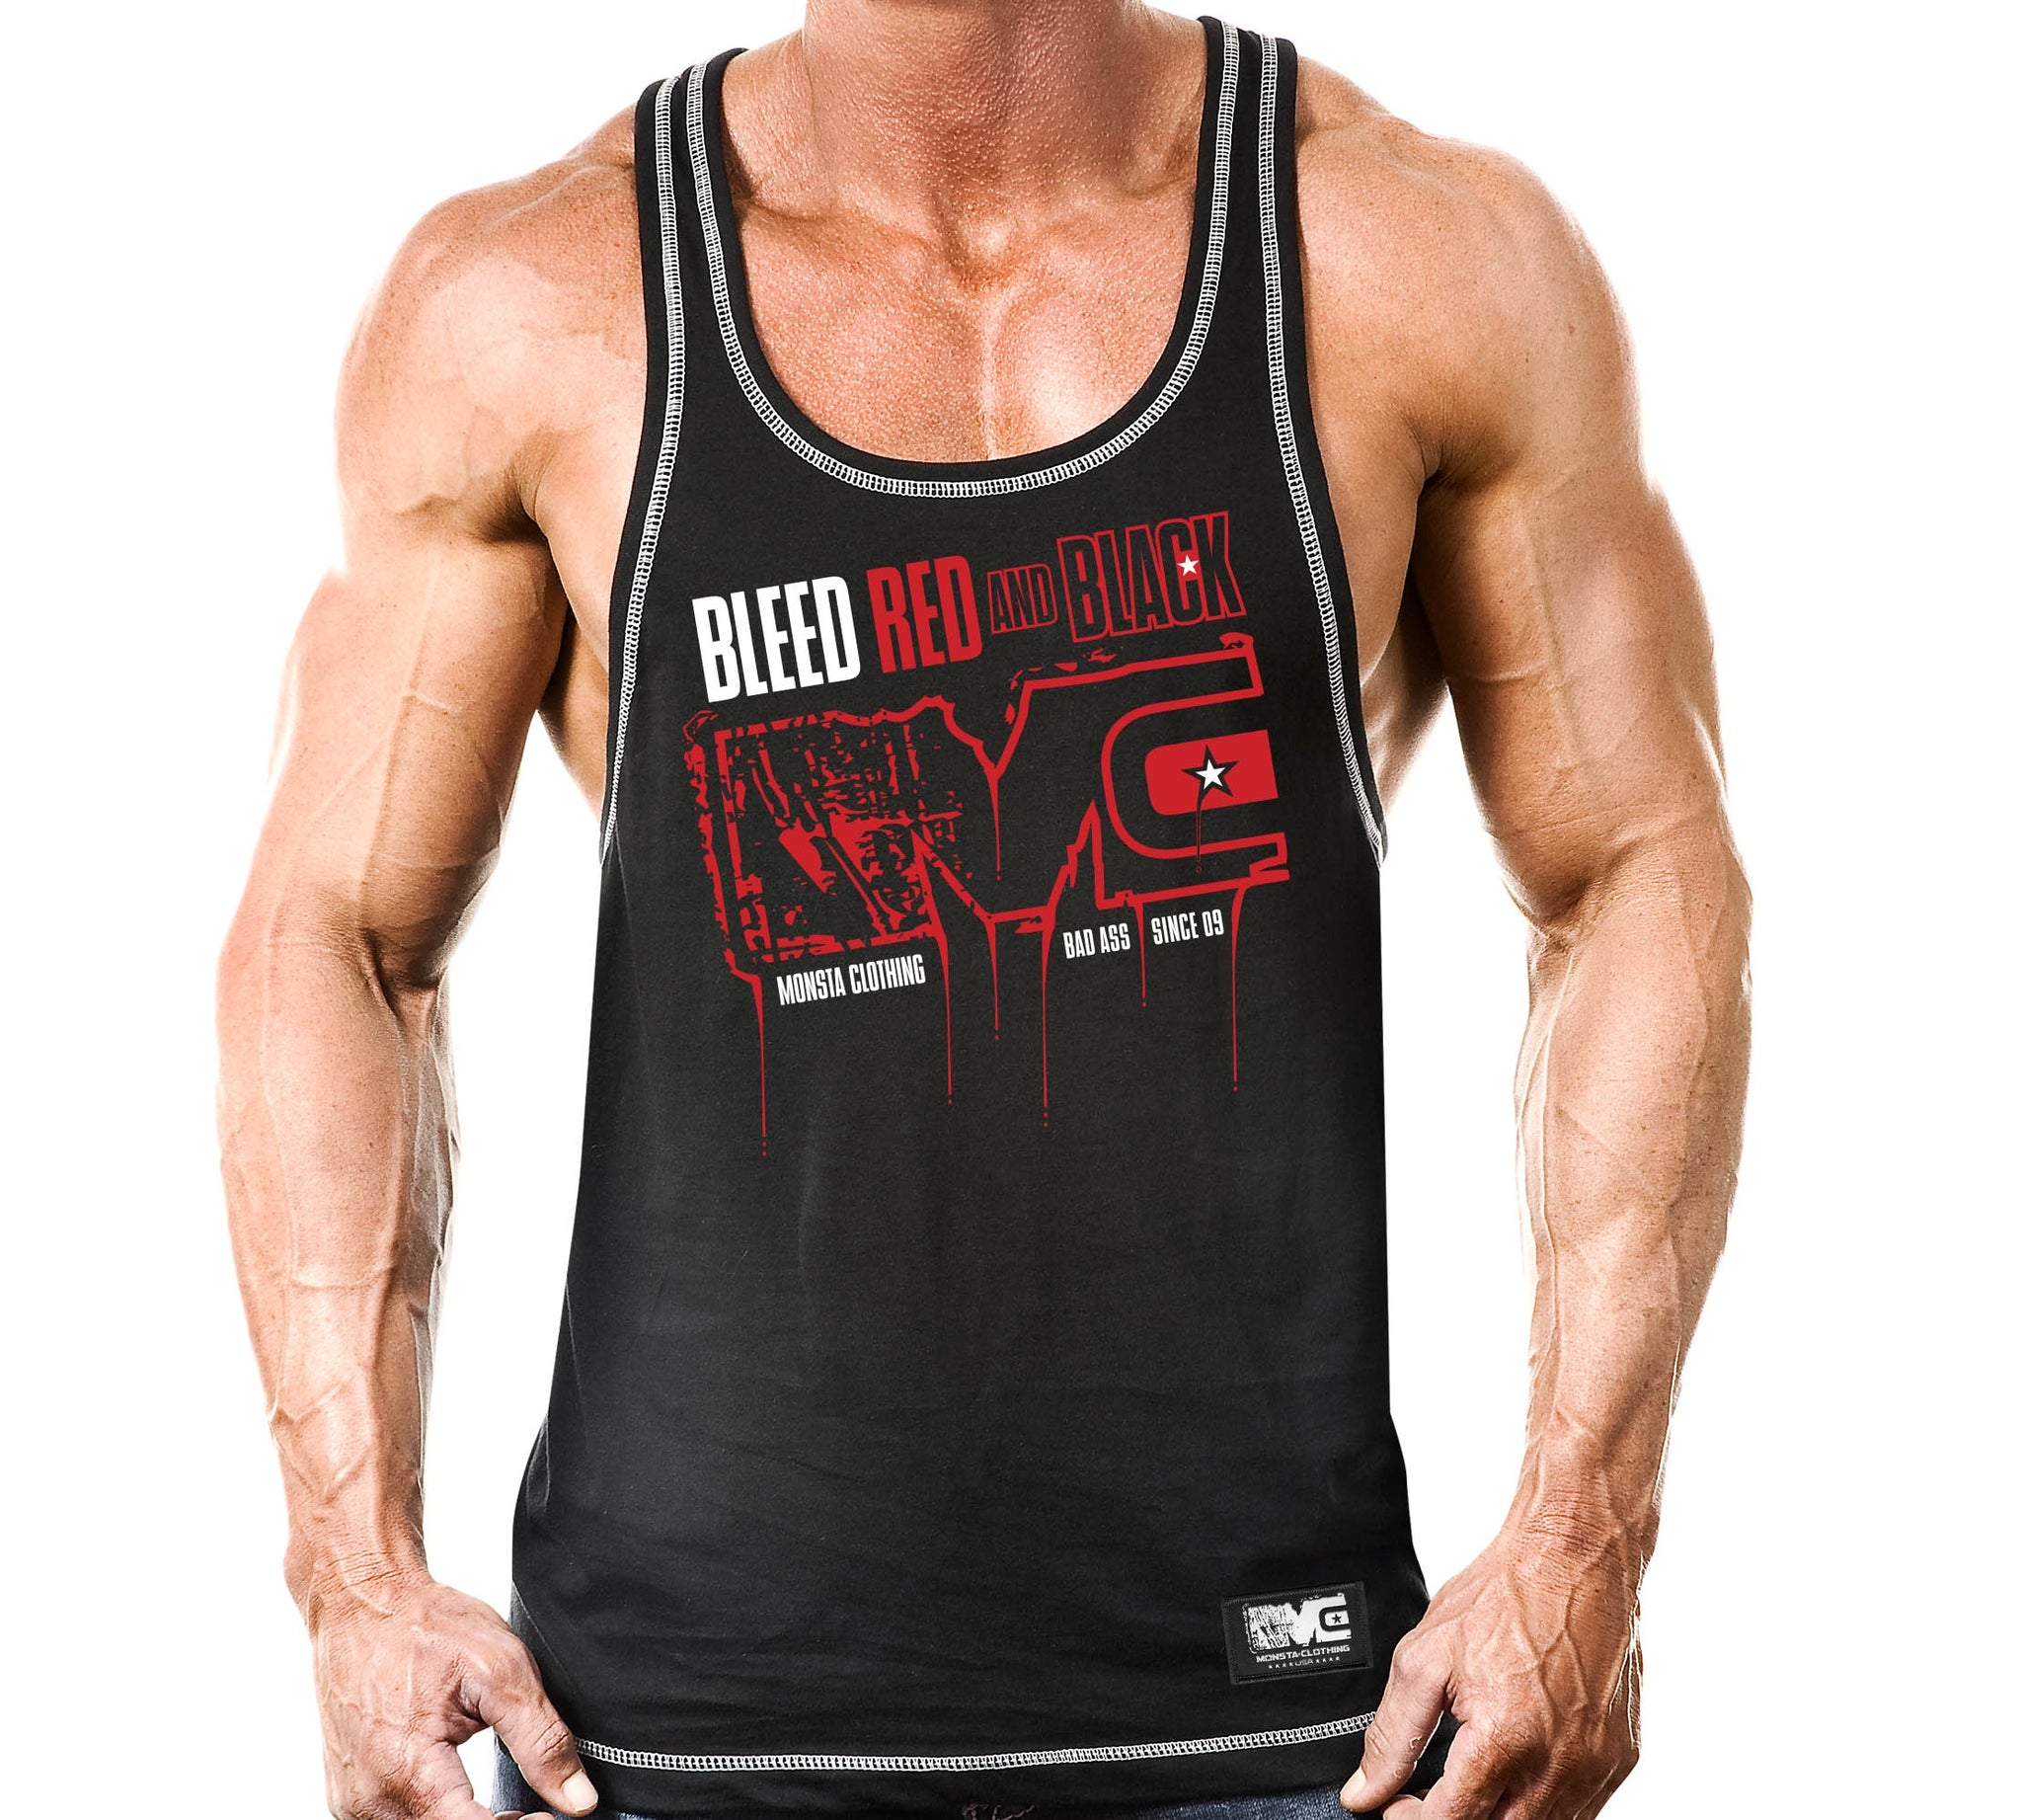 BLEED RED AND BLACK - Monsta Clothing Australia